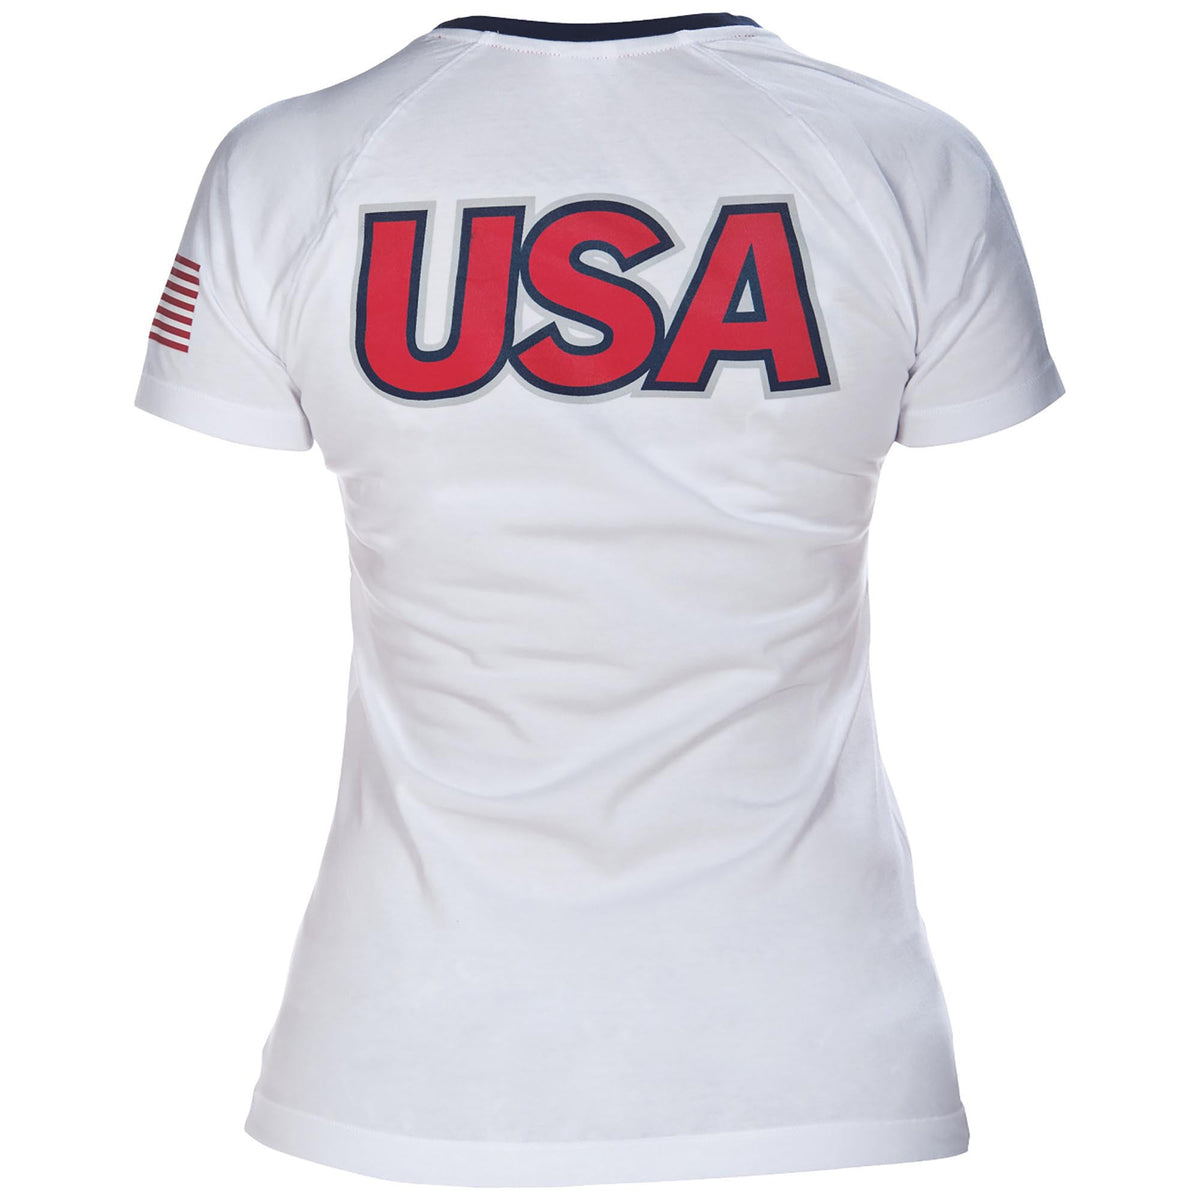 13e68c64 Official USA Swimming National Team Women's V-Neck Tee Shirt –  International Swimming Hall of Fame